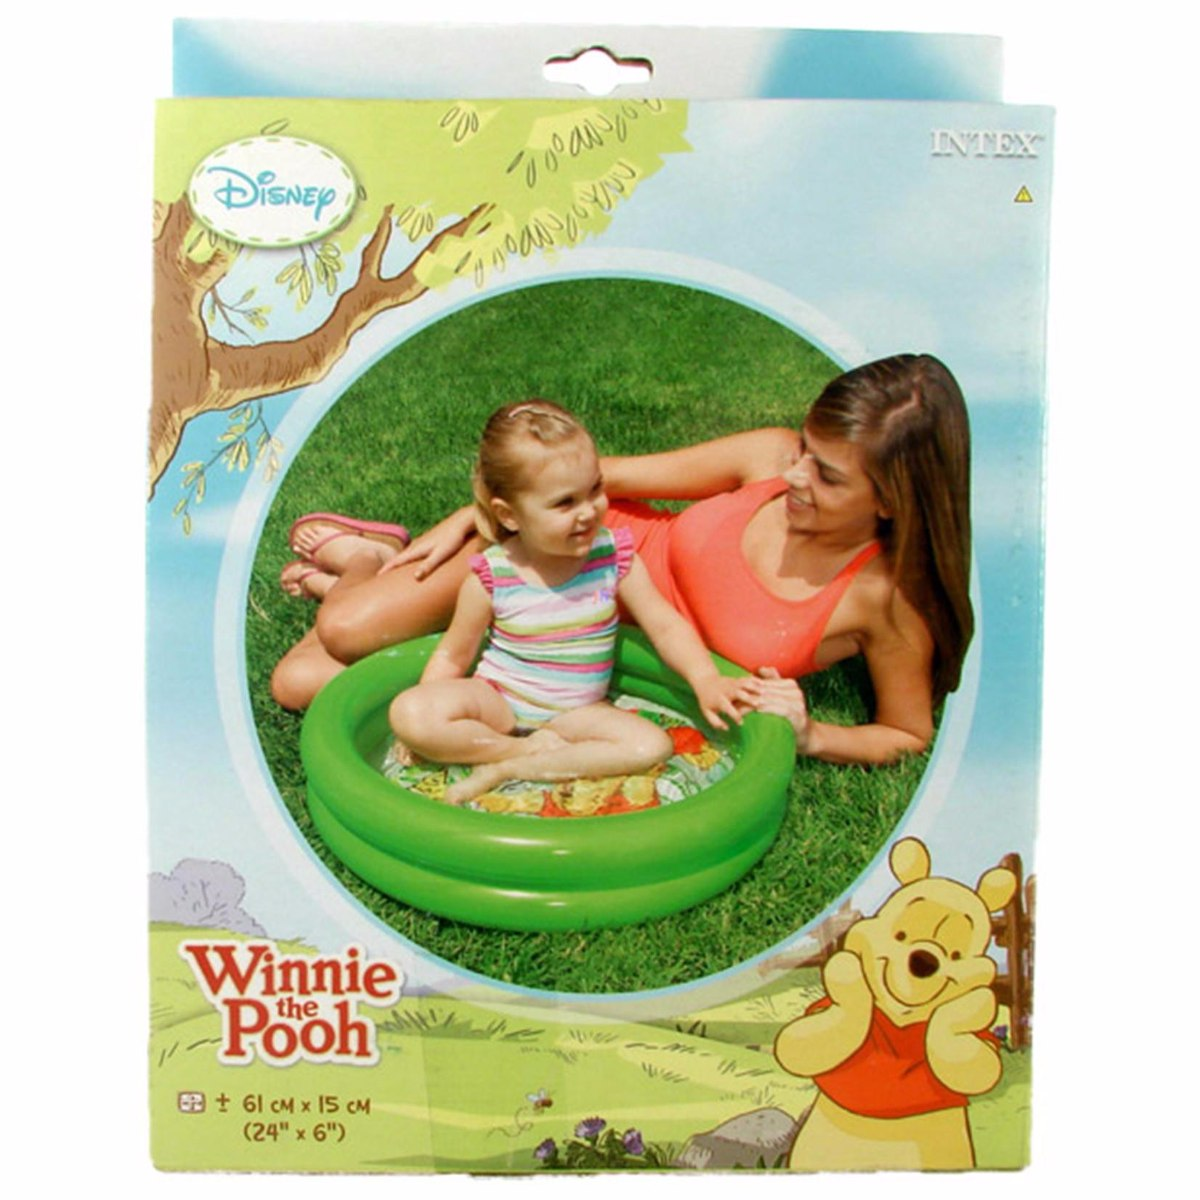 Piscina Bebe 6 Meses Piscina Inflable Bebes Niños 61x15cm Winnie The Pooh 58922